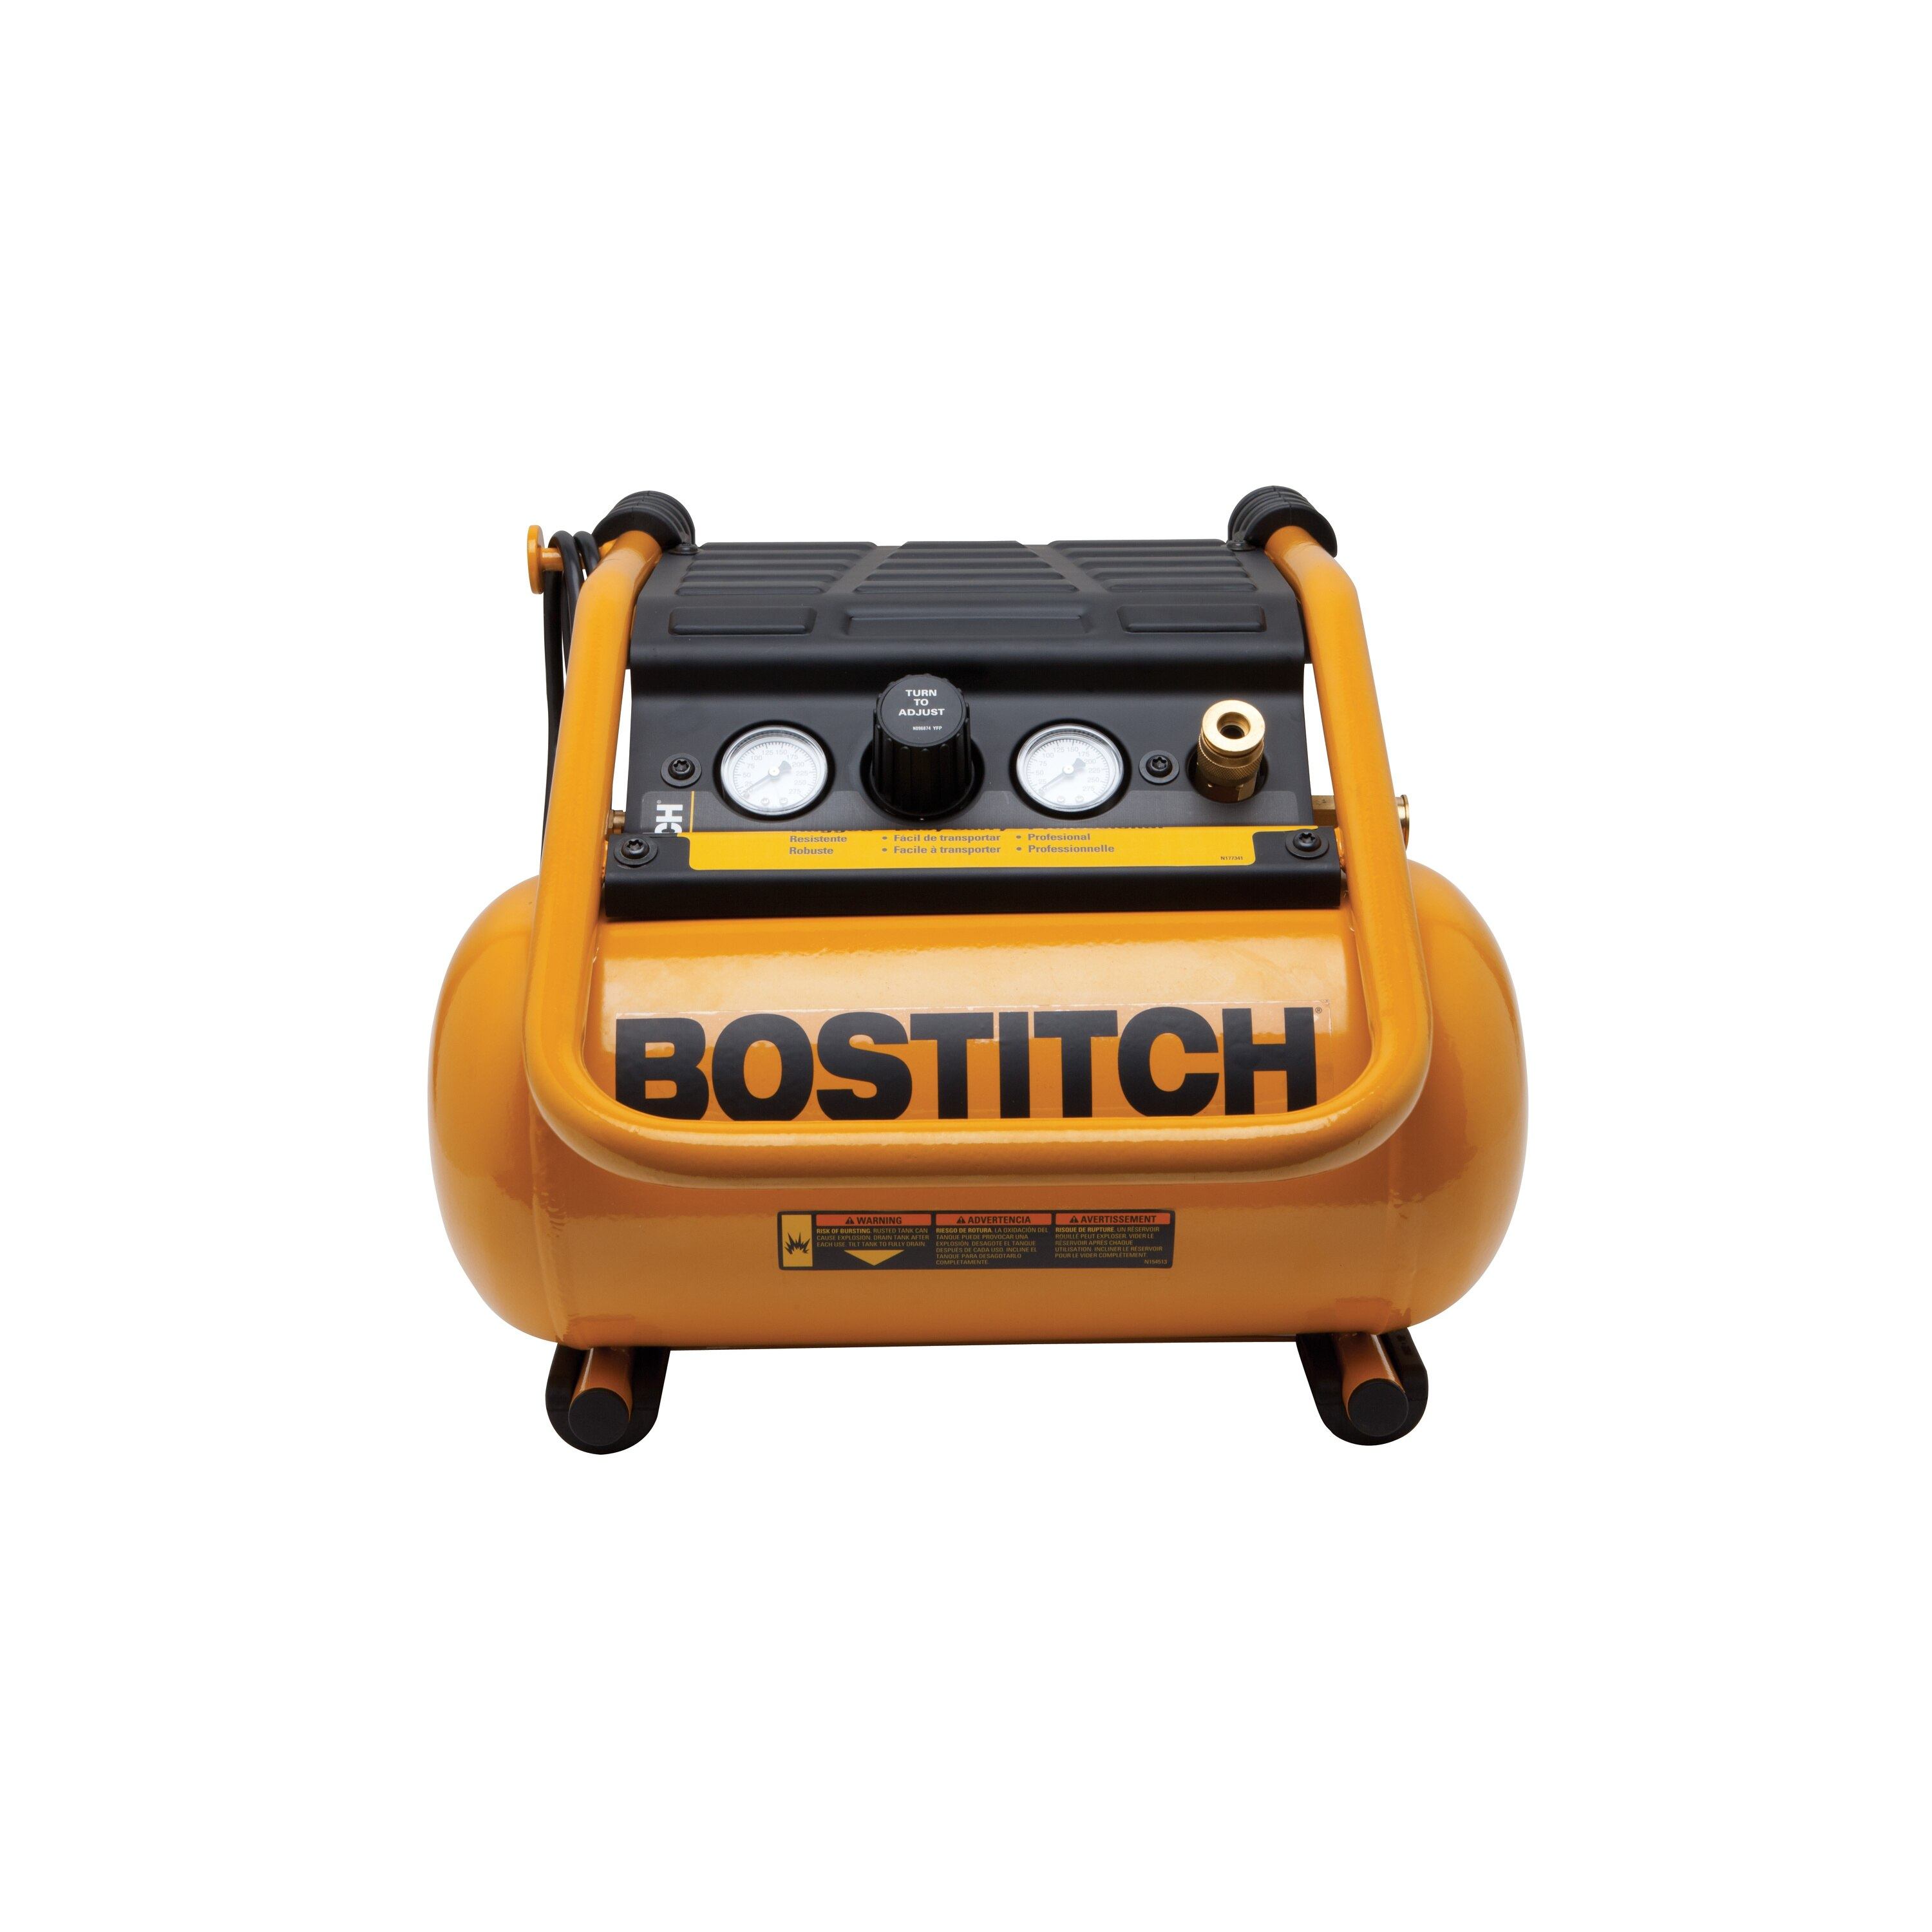 Bostitch - 25Gallon 150 Max PSI SuitcaseStyle Compressor - BTFP01012